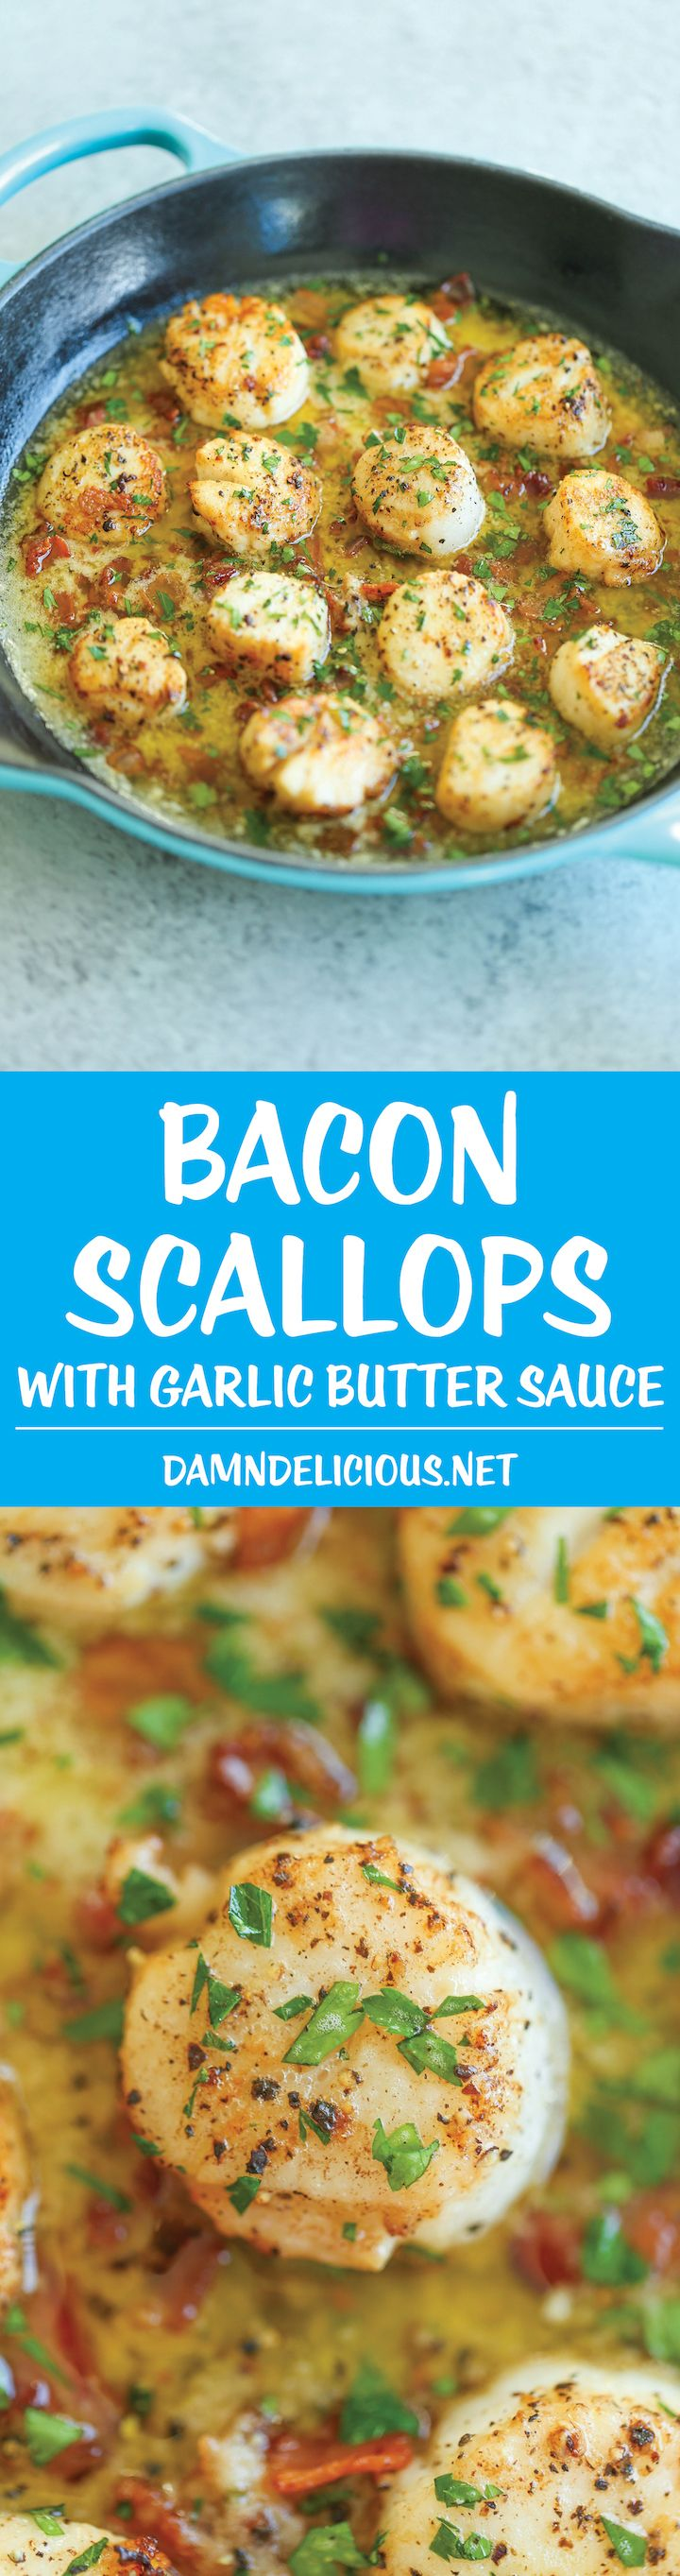 Bacon Scallops with Garlic Butter Sauce - Crisp bacon, tender-melt-in-your mouth scallops with the most heavenly butter sauce. So fancy yet so easy!